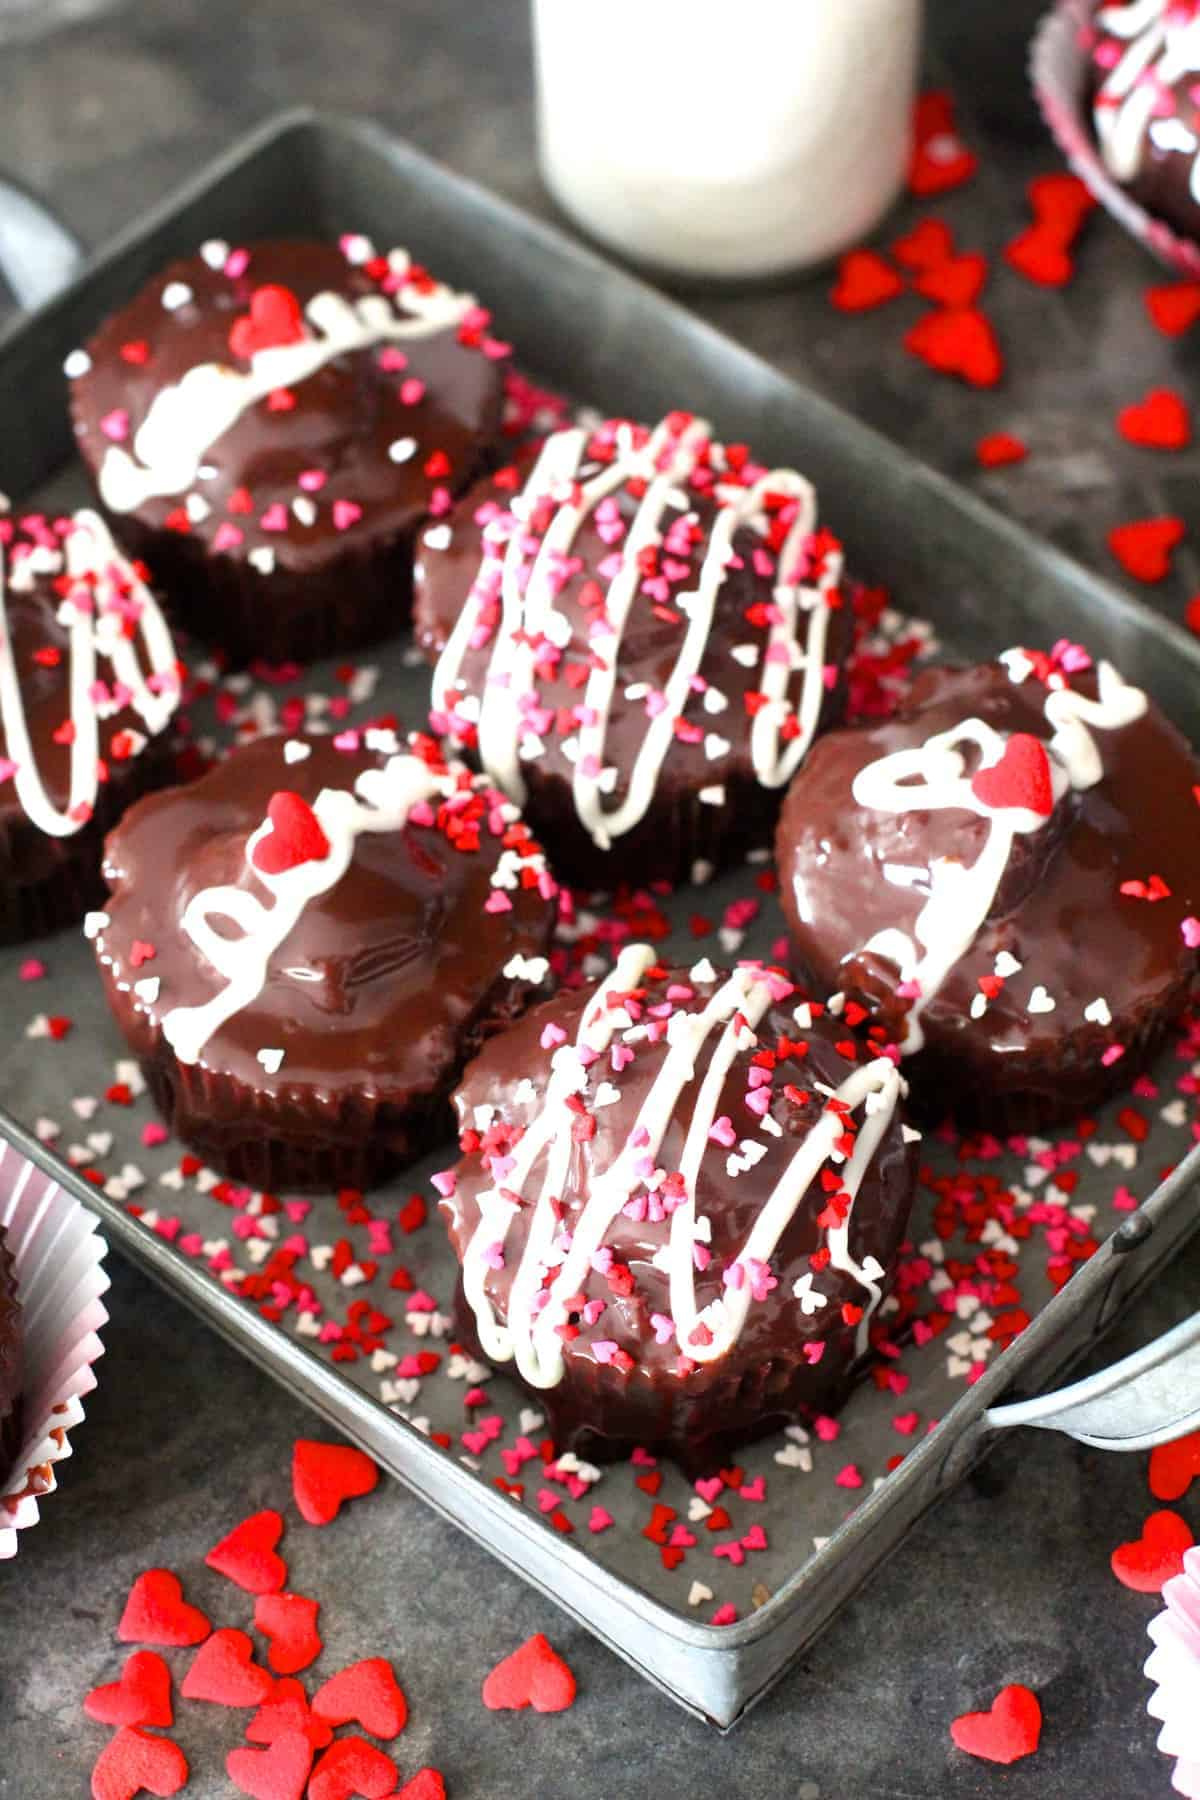 Fun Chocolate Creme Filled Valentine's Day Cupcakes